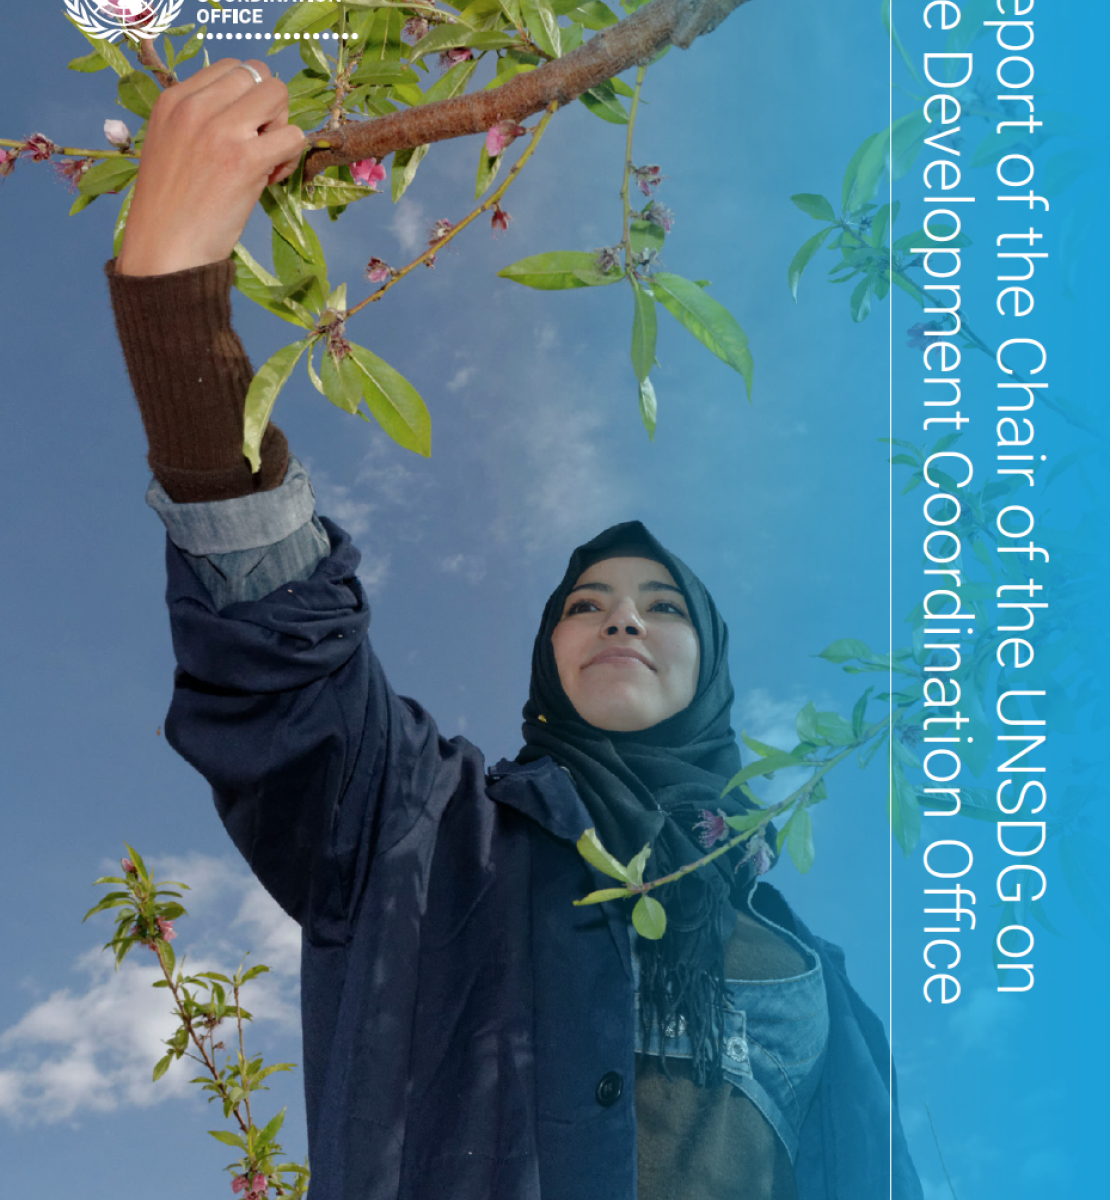 The cover shows an image of a young woman reaching for a tree branch with the UN emblem to the top left of the cover and title displayed vertically across the right edge of the cover.